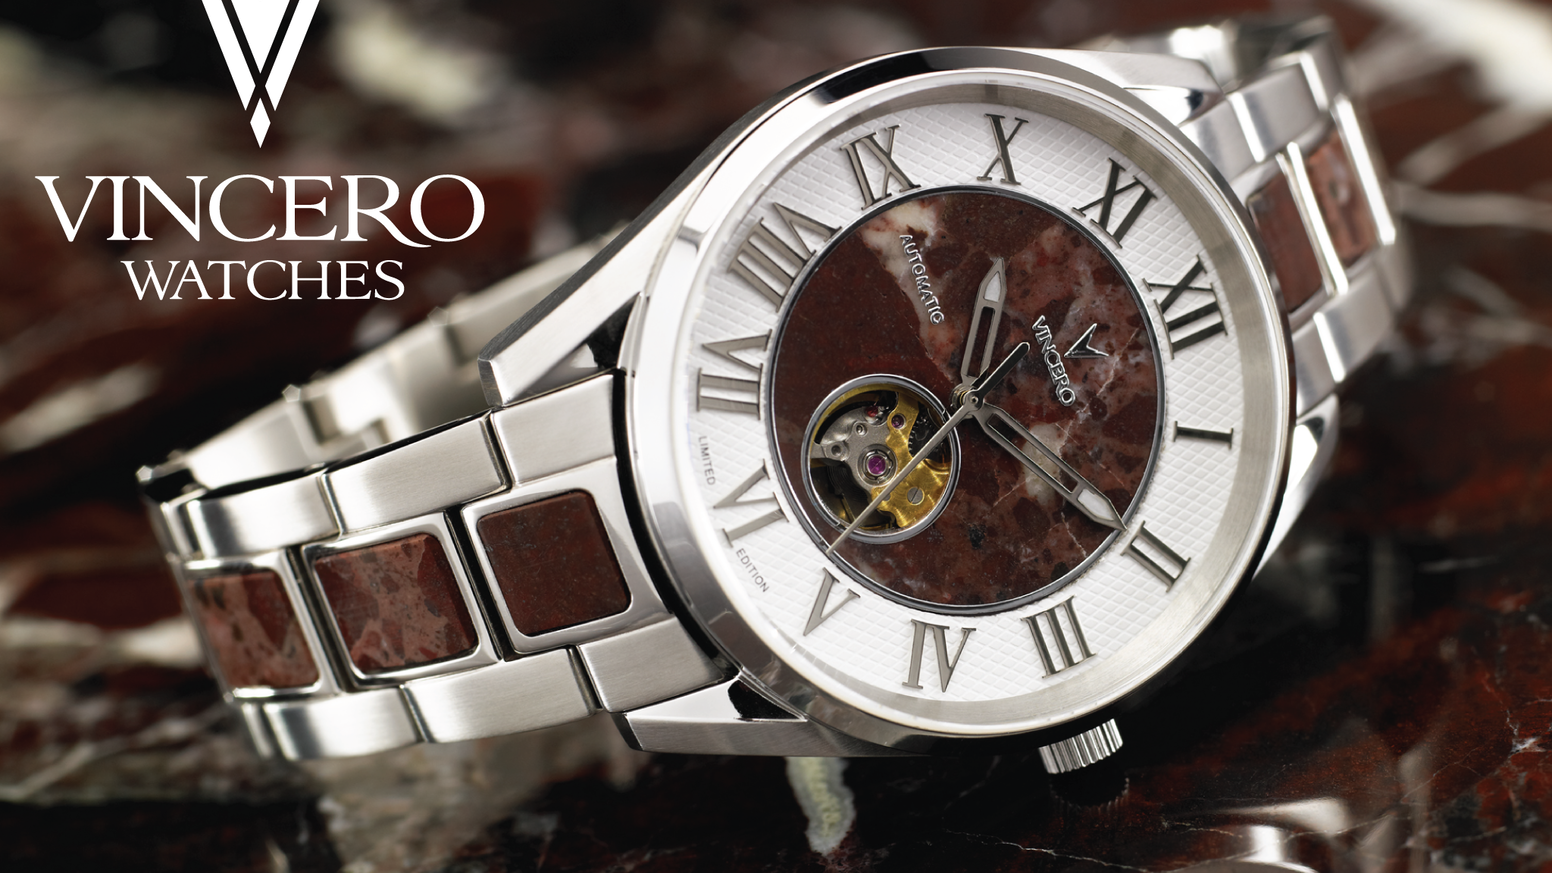 Vincero - Mechanical Timepieces with Italian Marble by